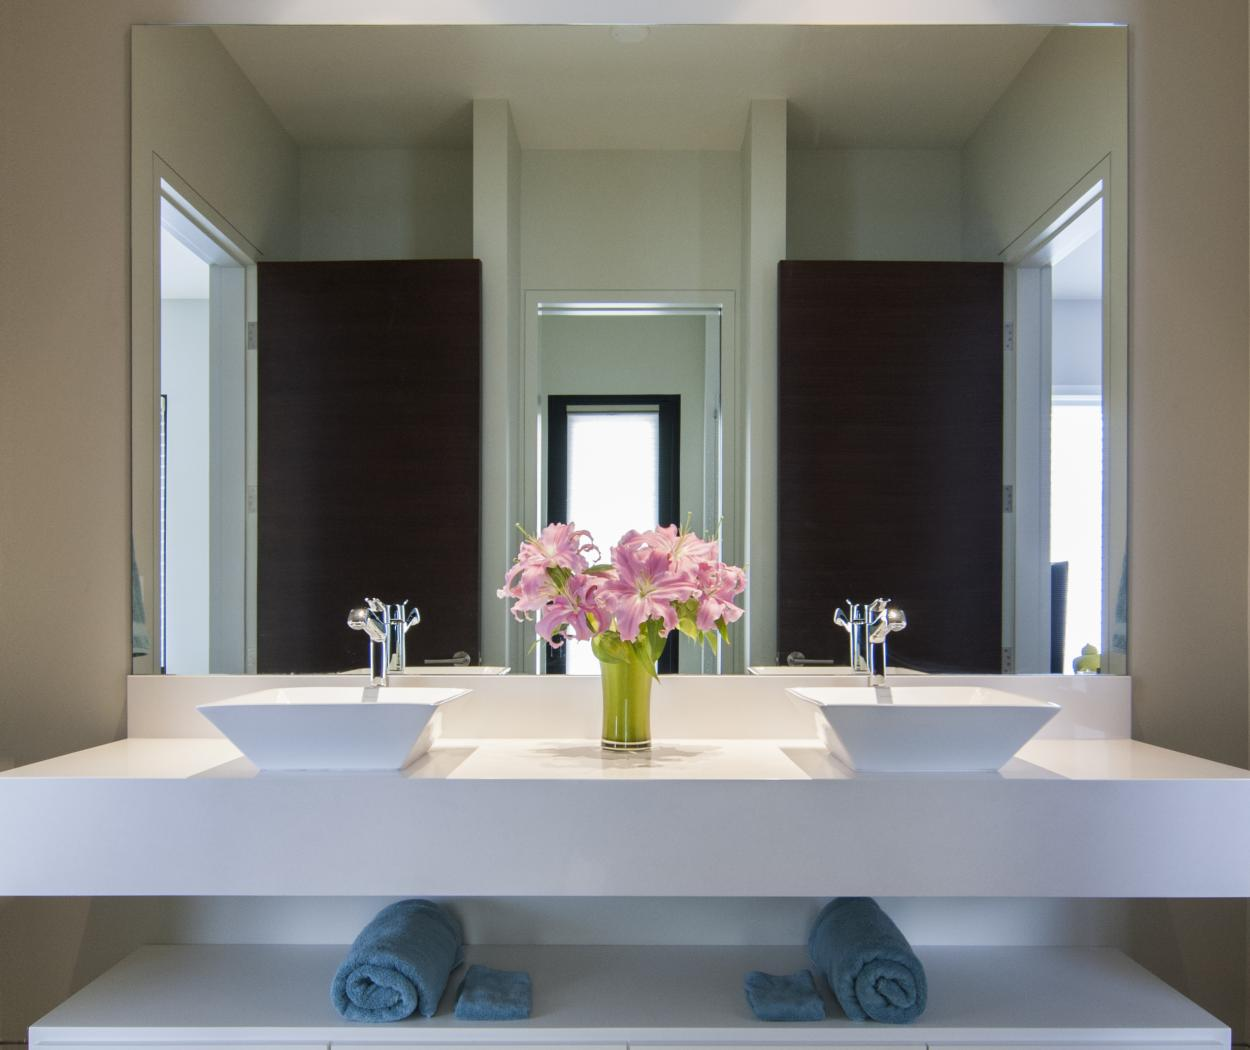 Beautiful White Contemporary Master Bathroom Floating Vanity with Double Sinks and a White Counter Top